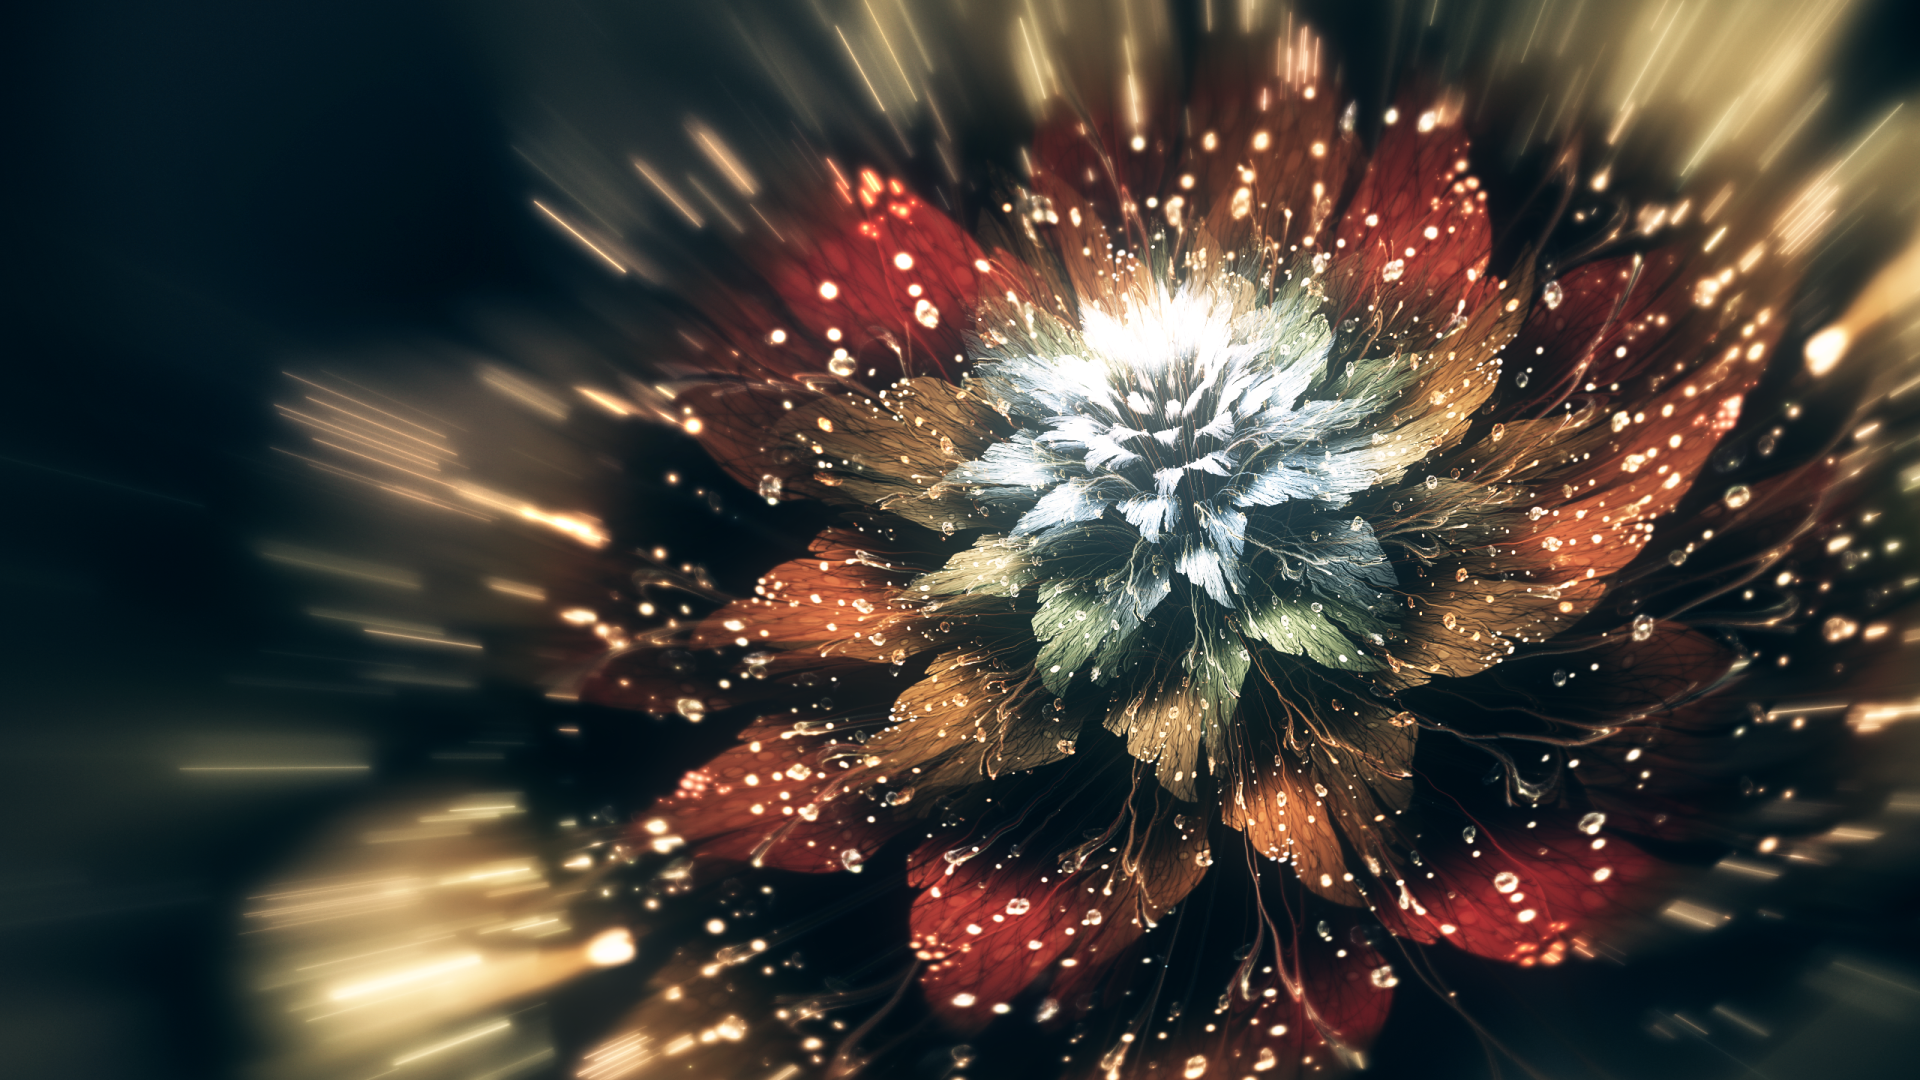 Abstract - Fractal  Flower Abstract Digital Art Artistic Wallpaper